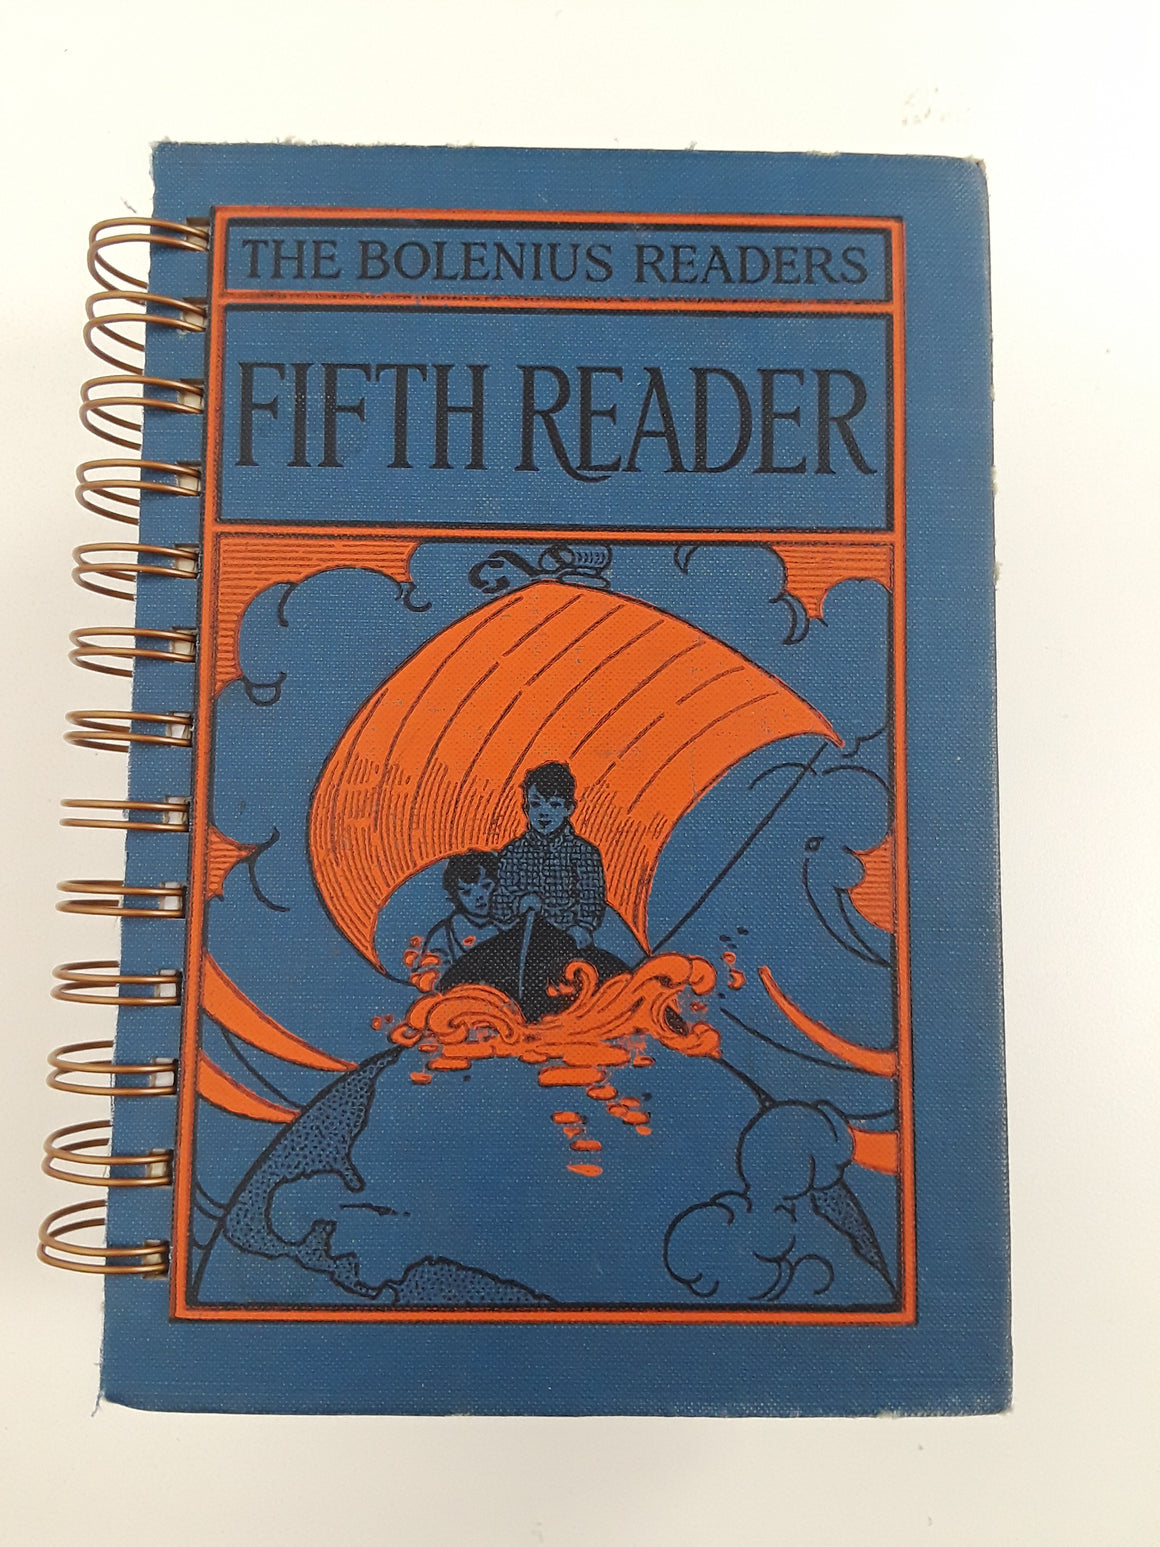 The Bolenius Readers Fifth Reader-Red Barn Collections